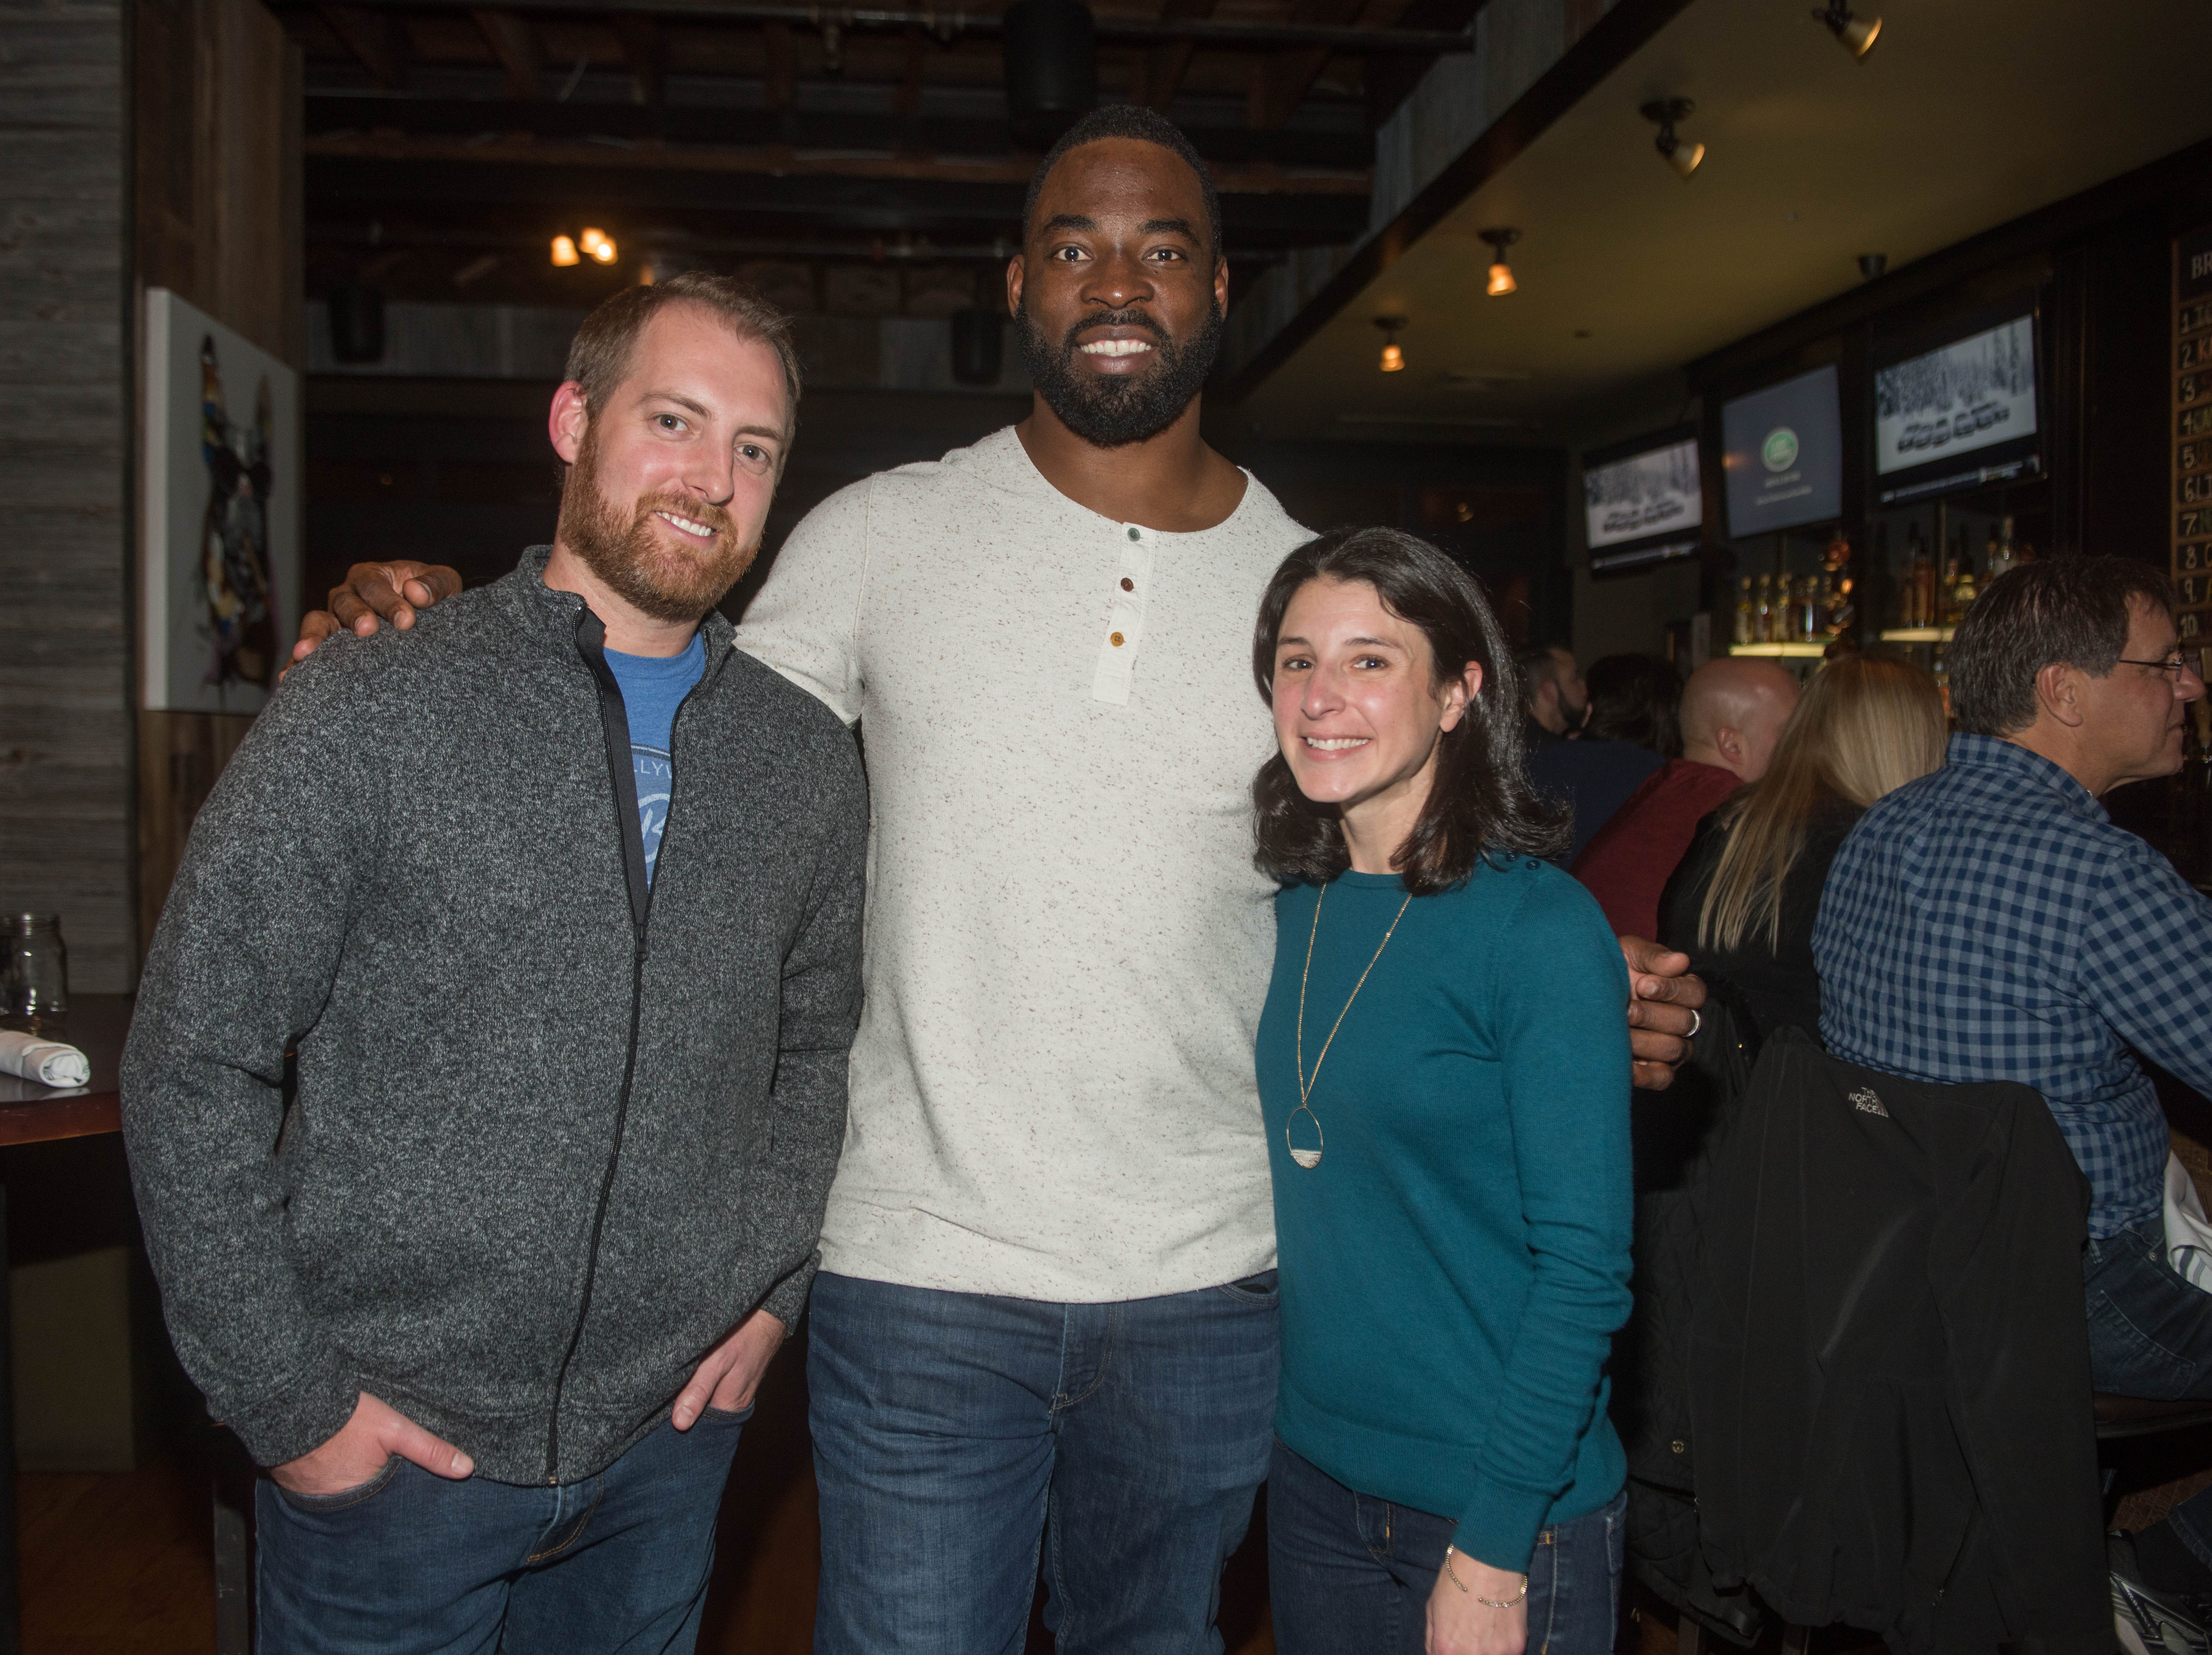 Erik Stainsen, Justin Tuck and Laura Adams Stainsen. (201) Magazine and NorthJersey.com held Taste Test Tuesday at he Dog and Cask in Rochelle Park with this month's cover model, Lauran Tuck and former cover model and former NY Giant Justin Tuck. 11/13/2018